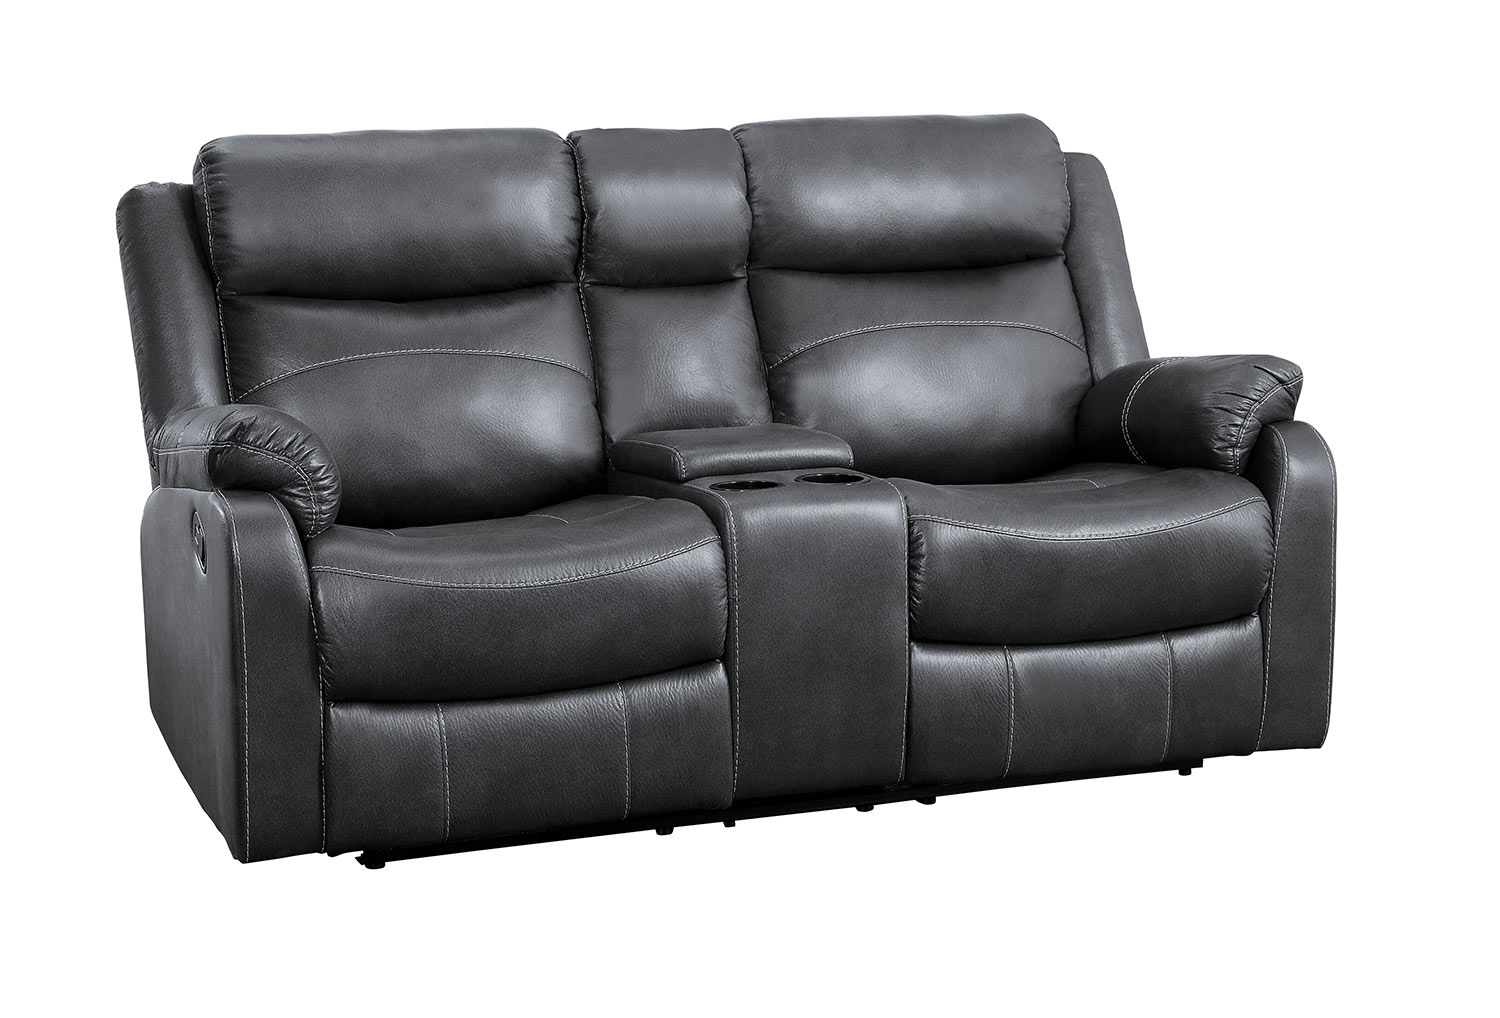 Homelegance Yerba Double Lay Flat Reclining Love Seat With Center Console - Dark Gray